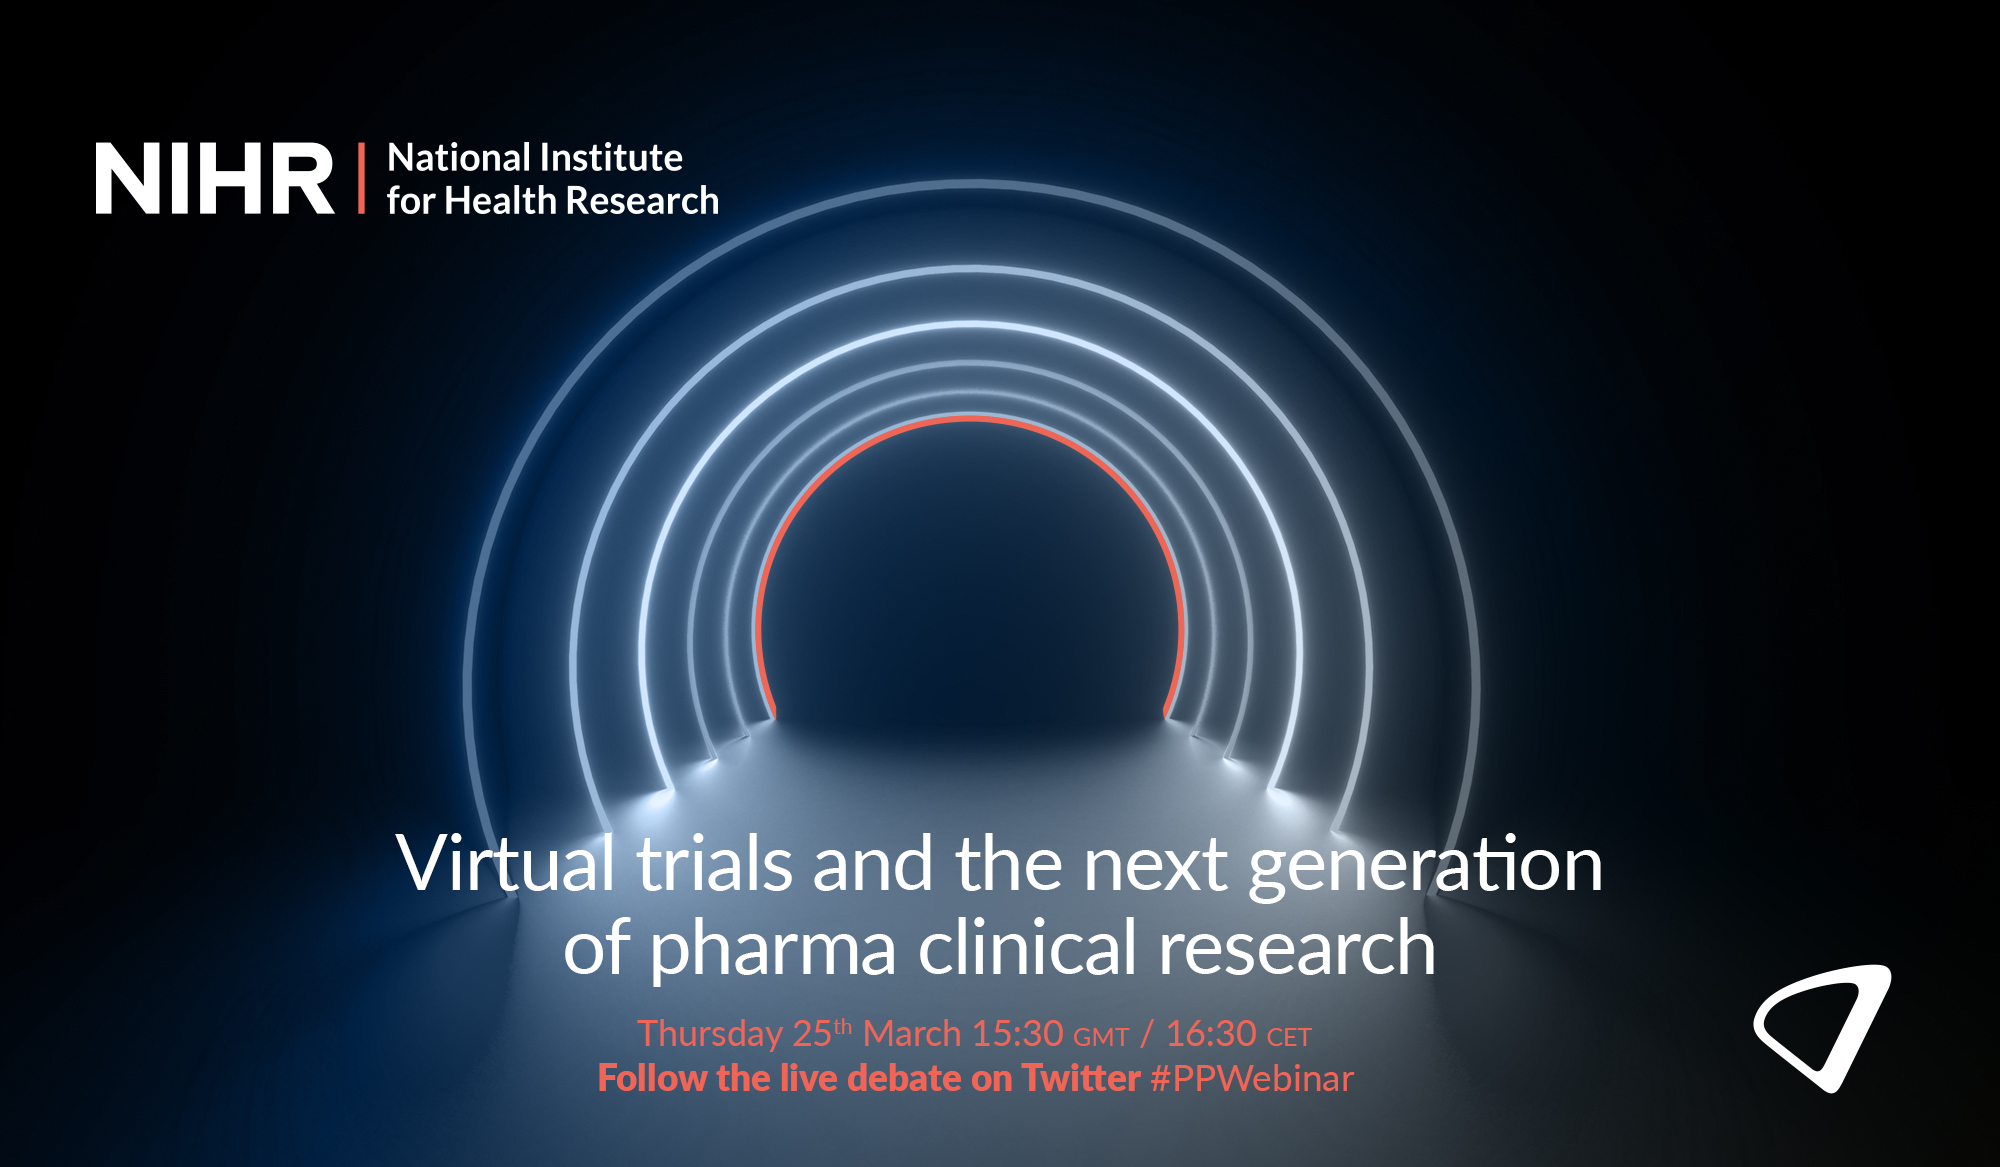 Virtual trials and the next generation of pharma clinical research